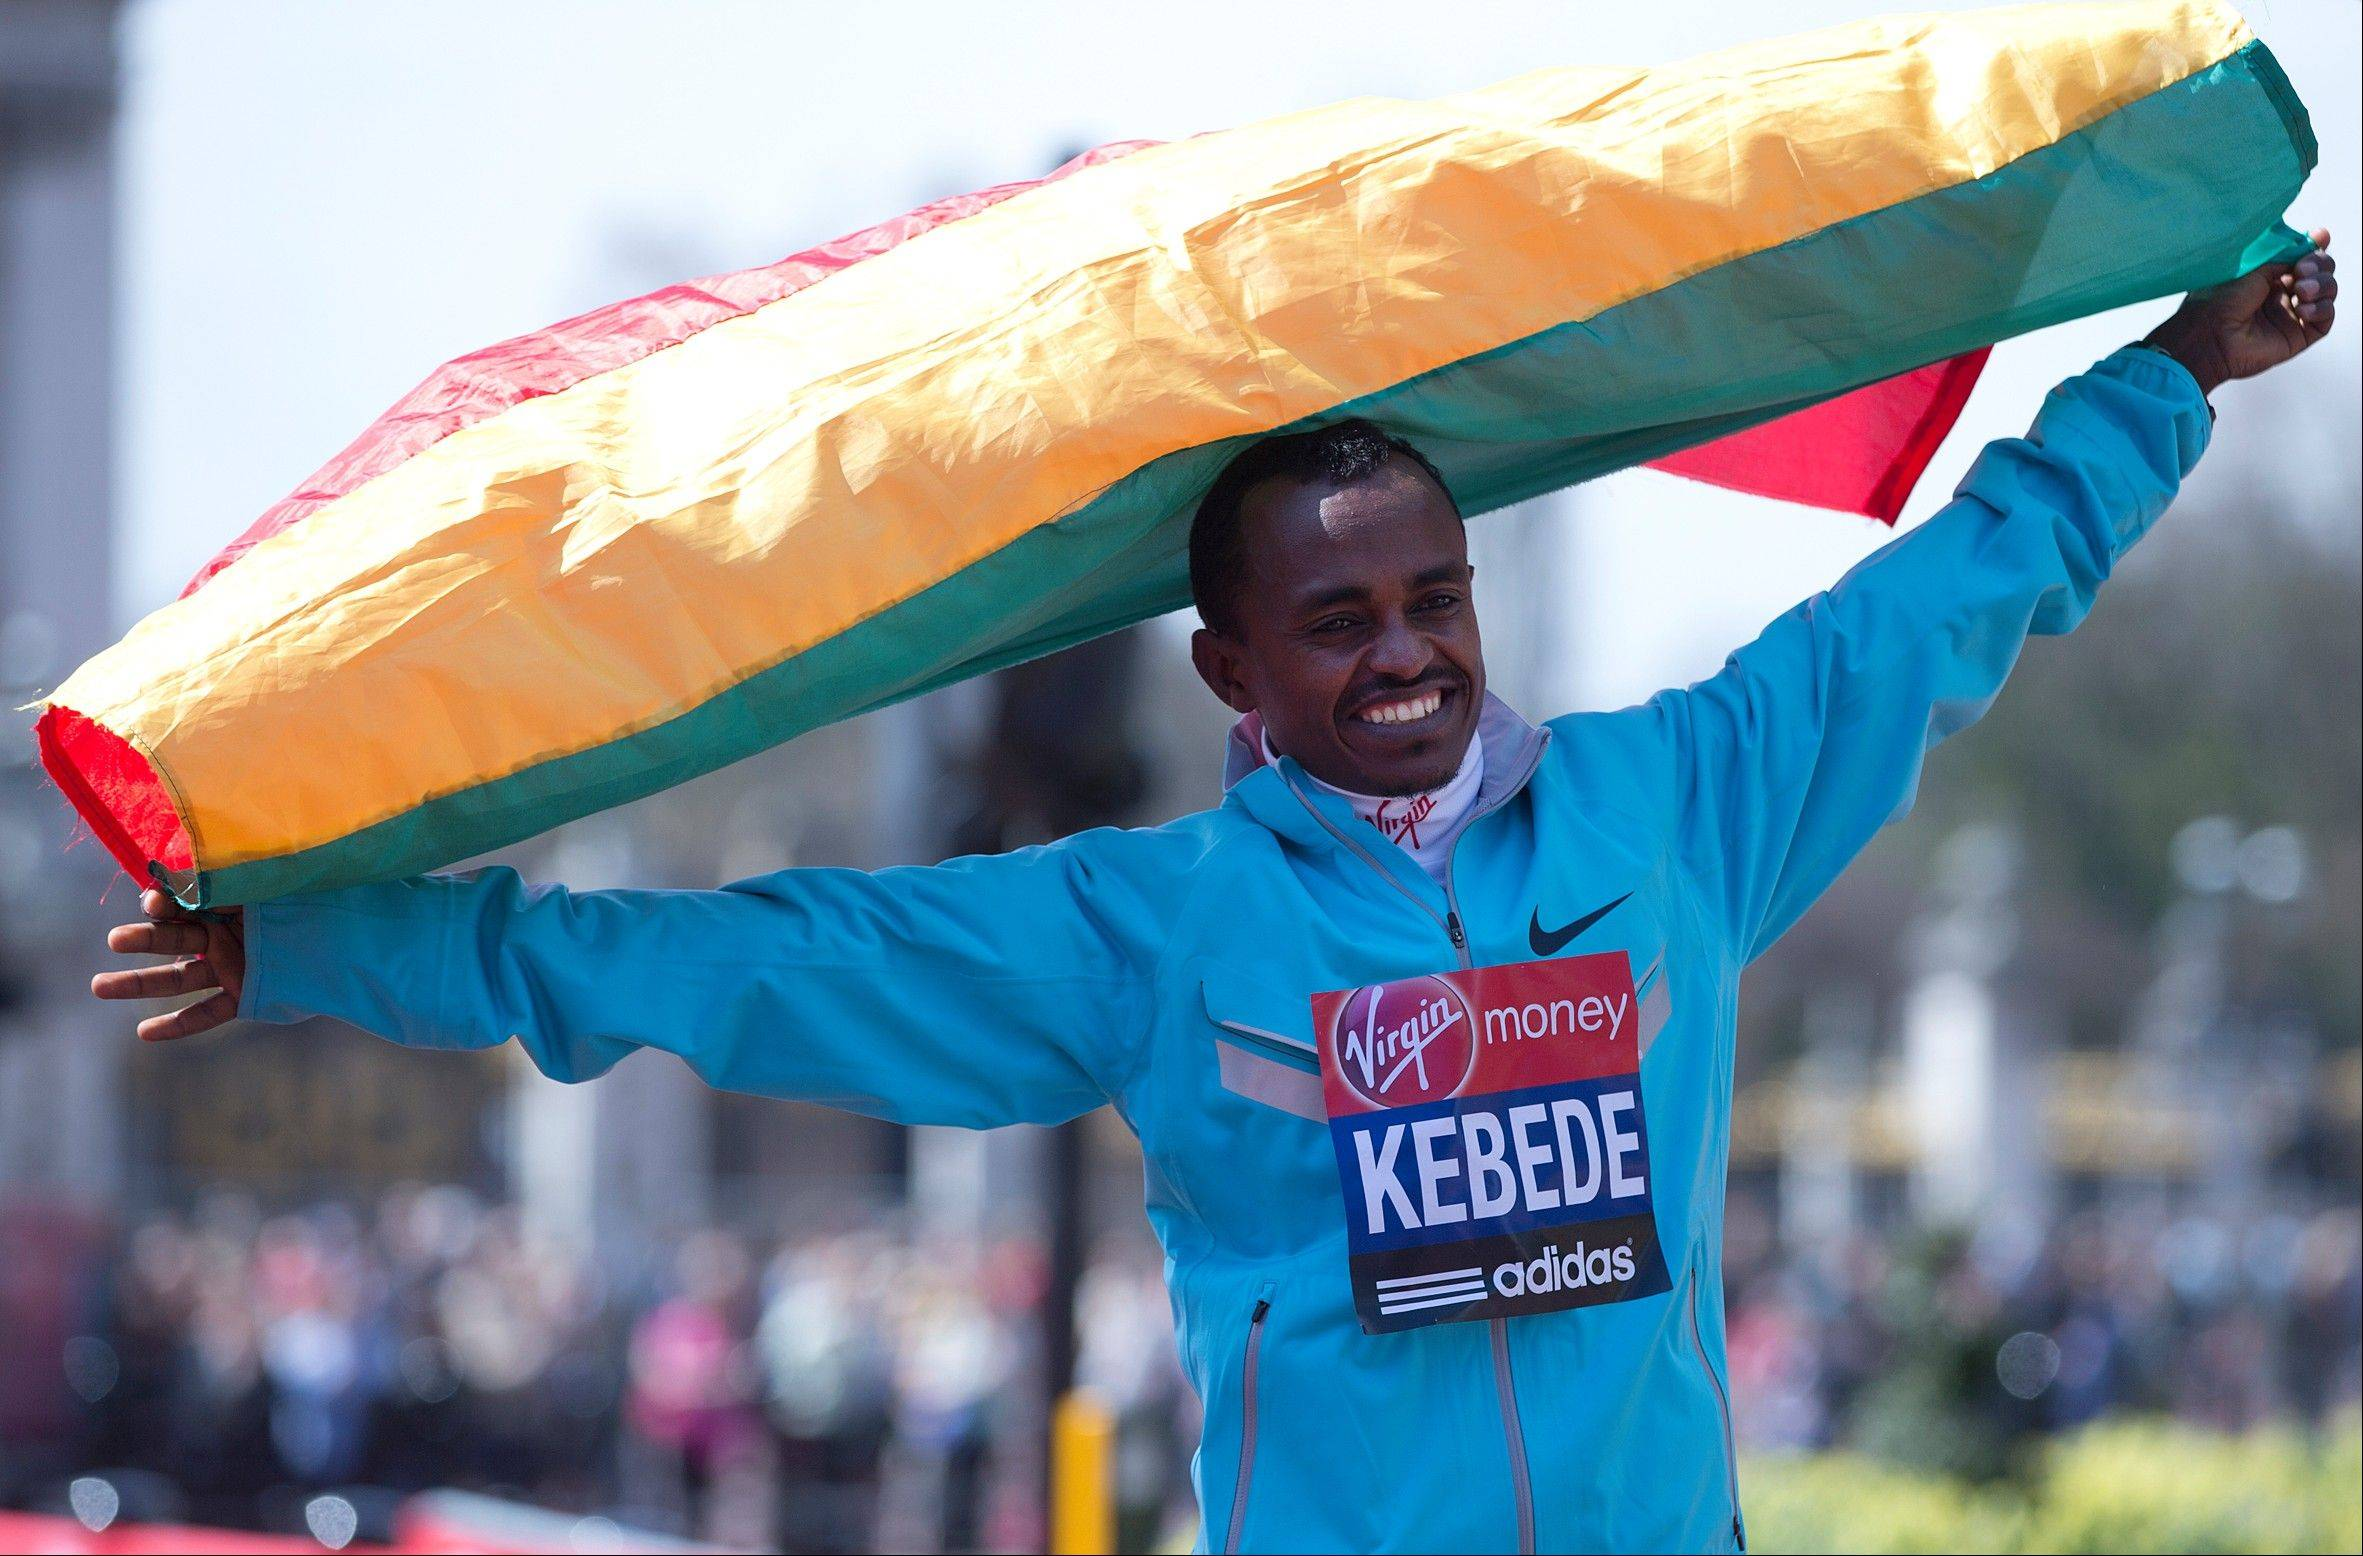 Tsegaye Kebede of Ethiopia, winner of the men�s London Marathon, holds his country�s national flag as he poses for photographs after the medal ceremony on Sunday. A defiant, festive mood prevailed Sunday as the London Marathon began despite concerns raised by the bomb attacks on the Boston Marathon six days ago.